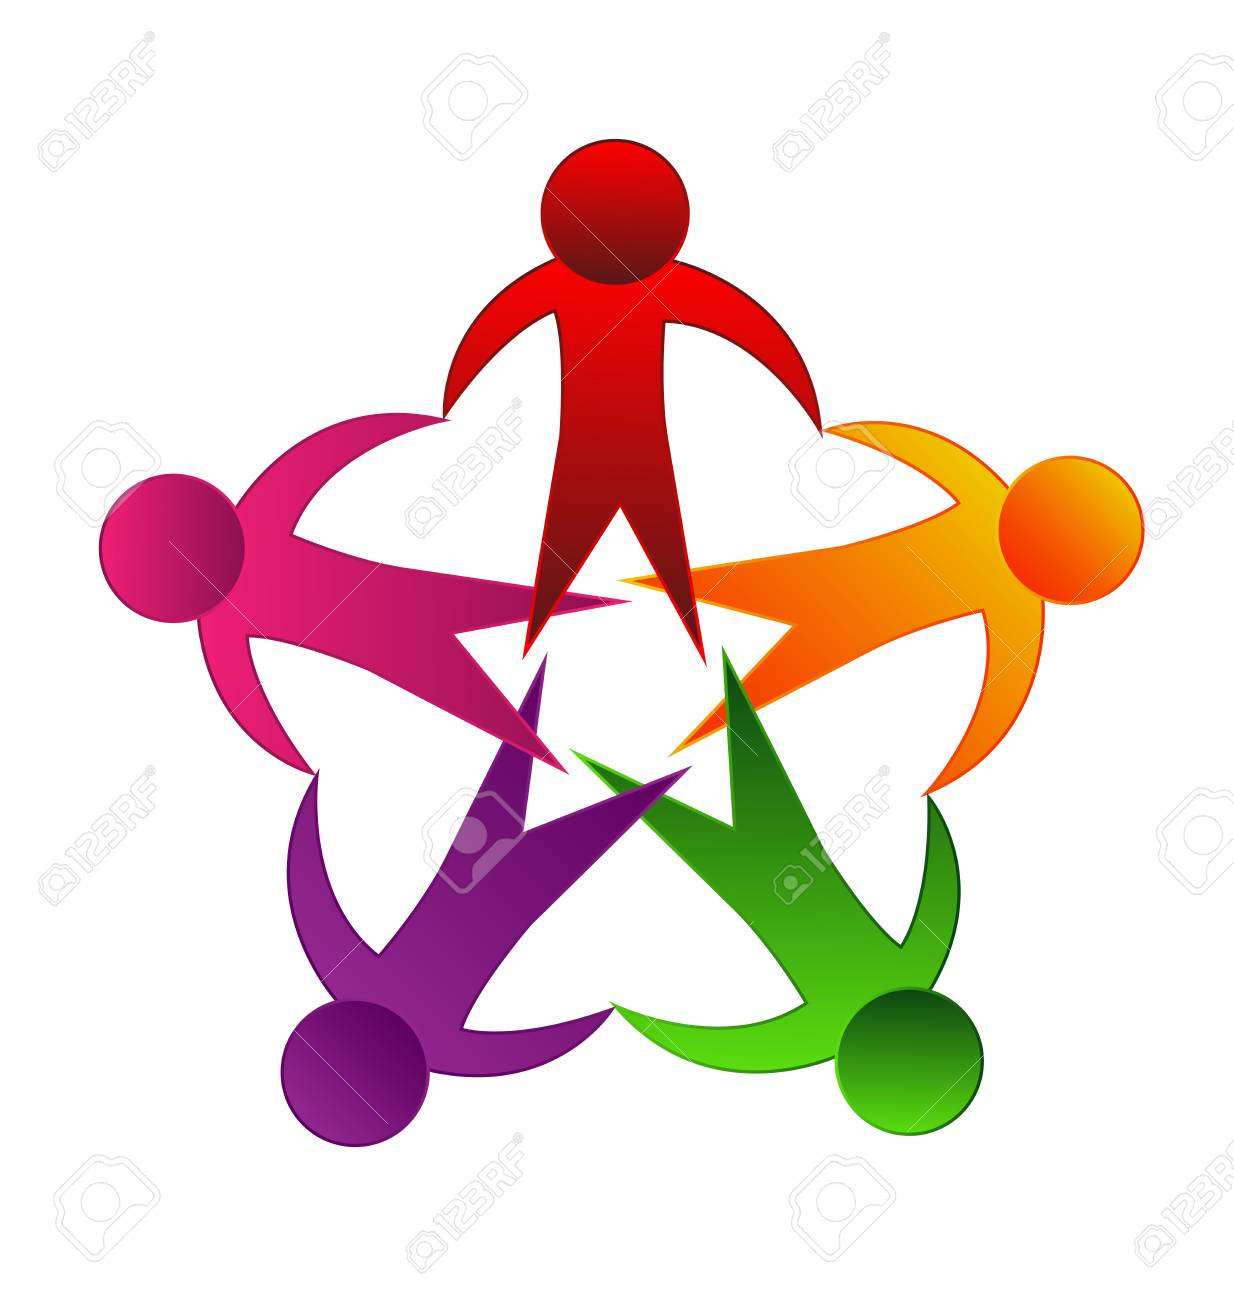 Logo Teamwork Unity Holding Hands Educational Concept Icon Vector Royalty Free Cliparts Vectors And Stock Illustration Image 102081325